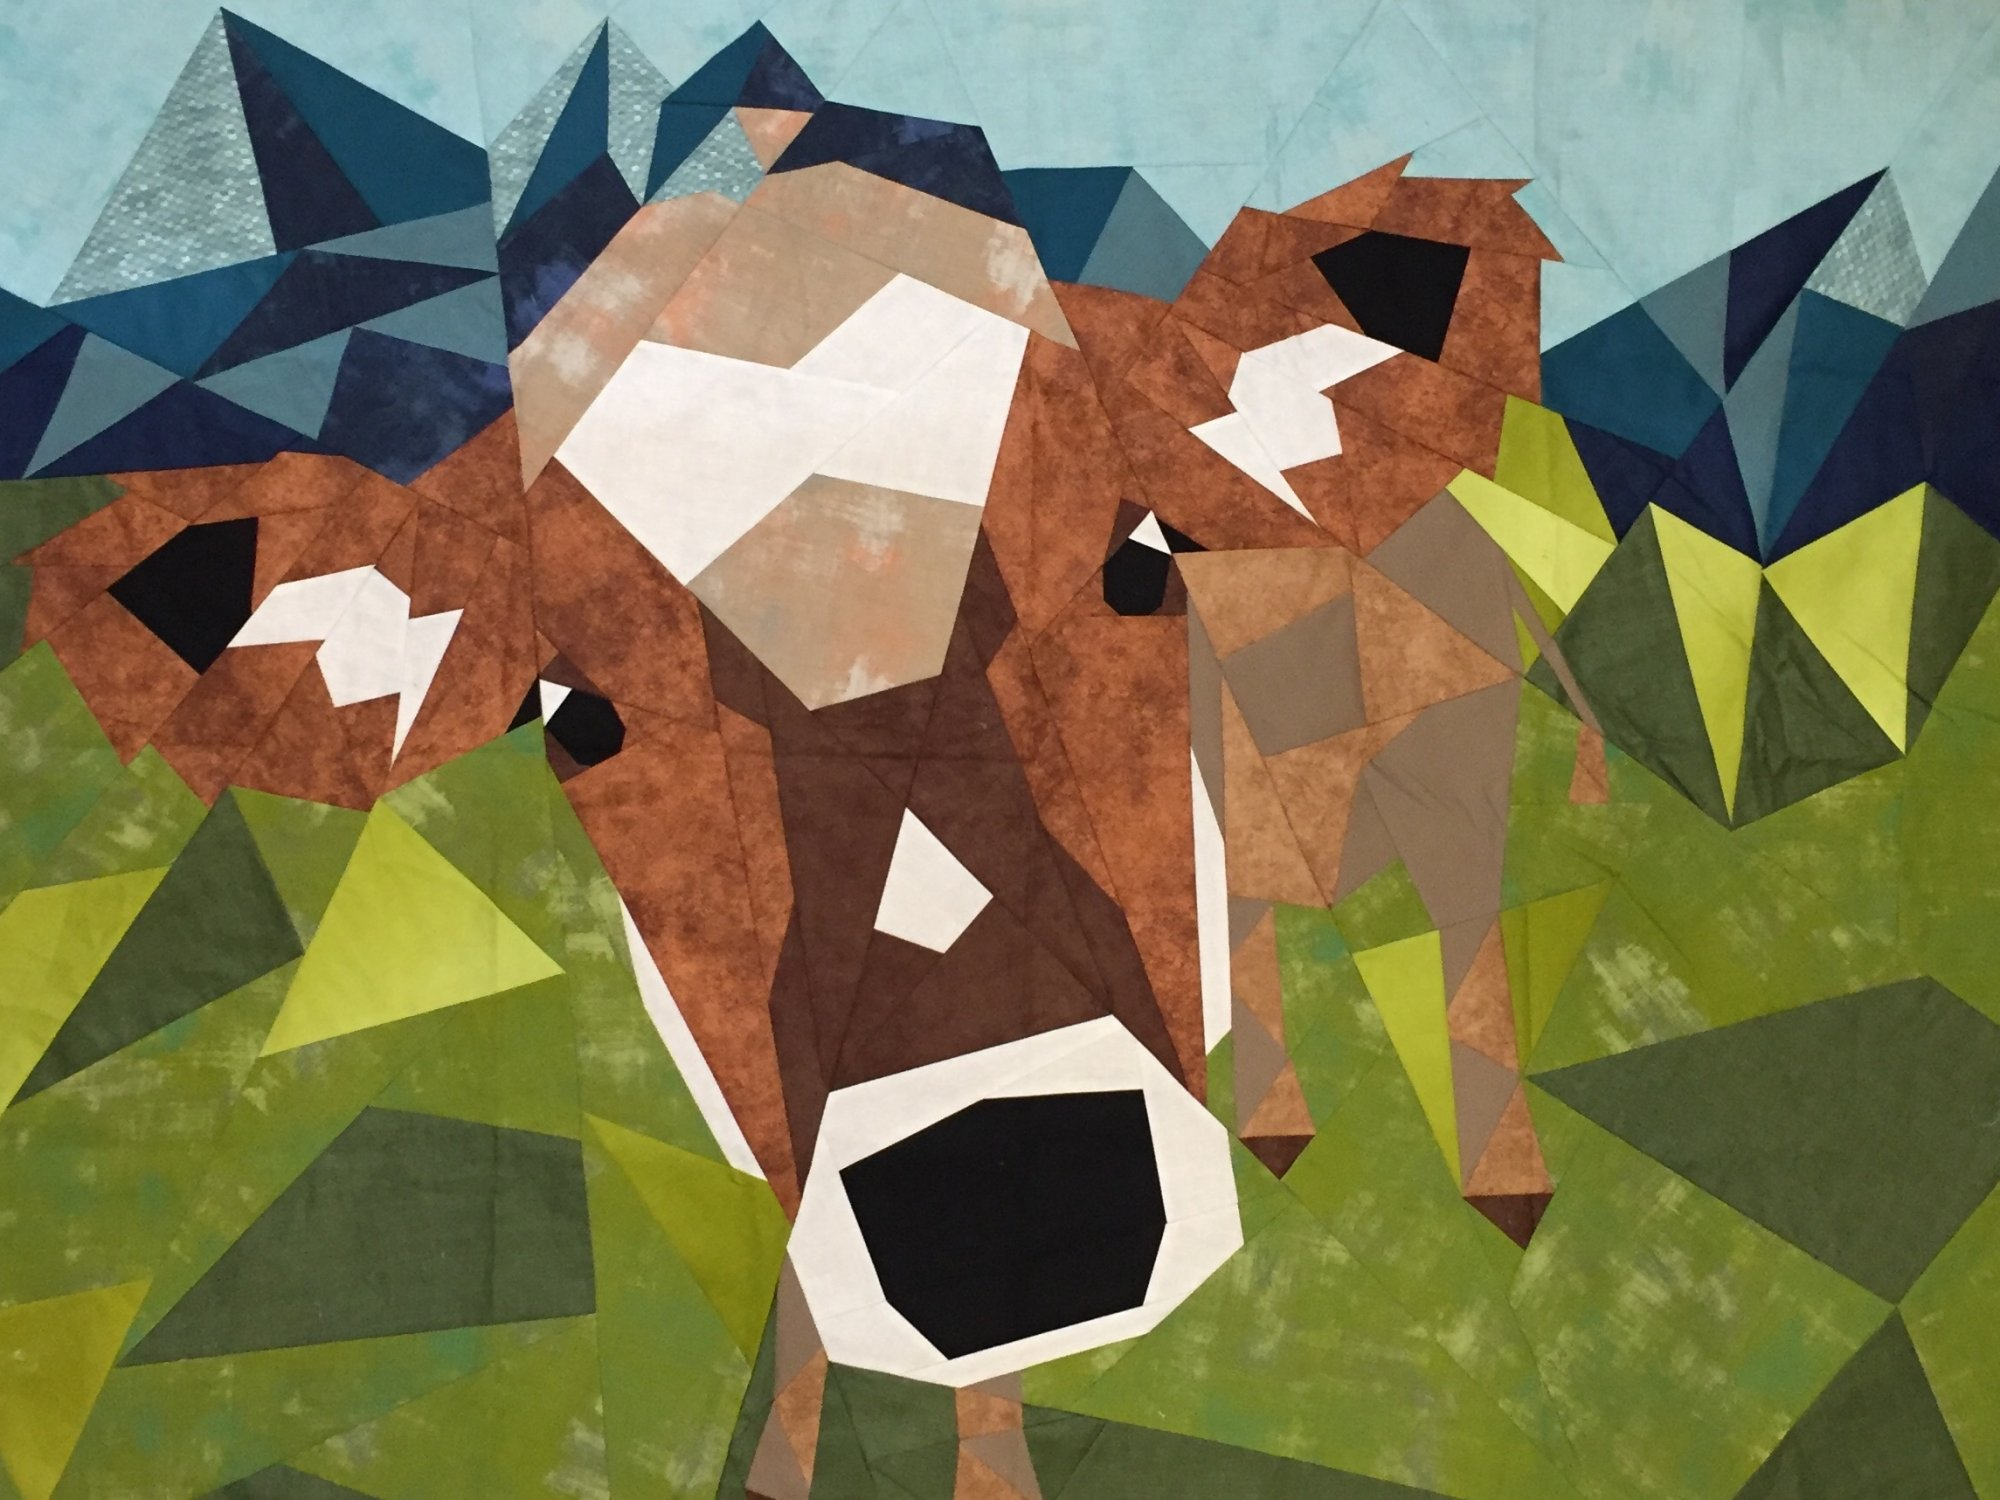 Cow Abstractions Kit 54 x 62